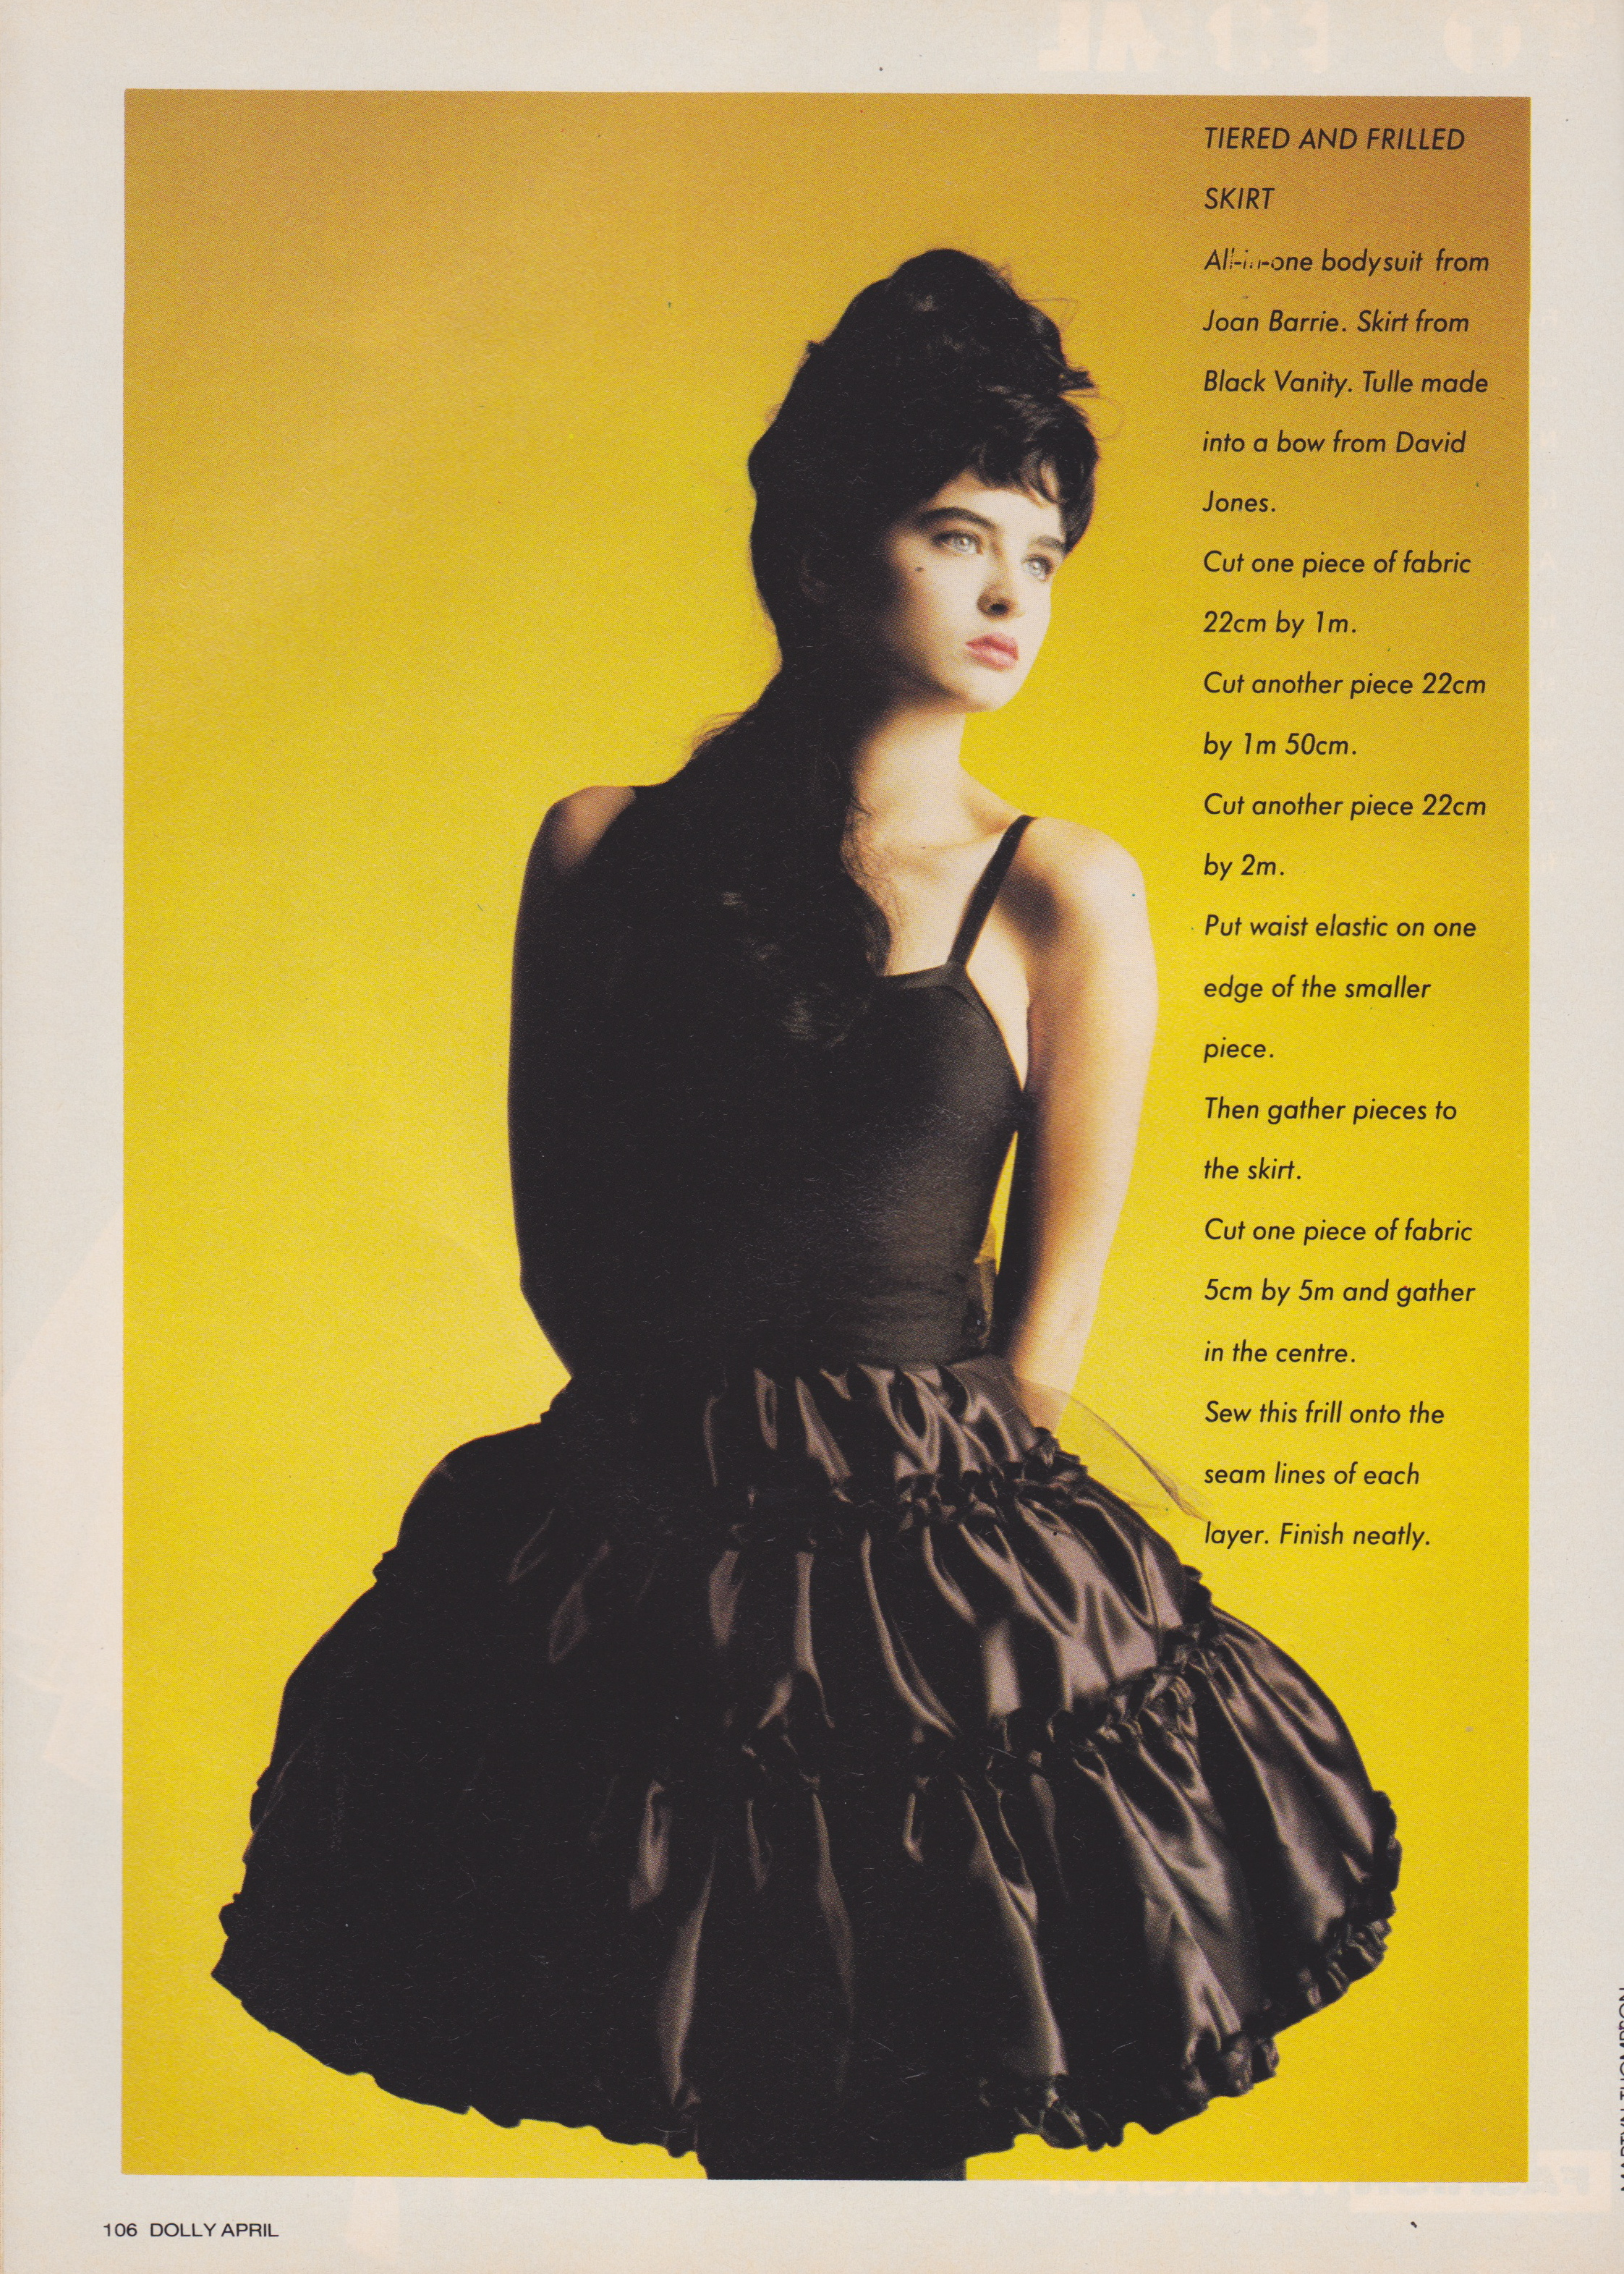 Dolly April 1987 | The Shape Of Skirts To Come (Belinda Riding) 03.jpeg